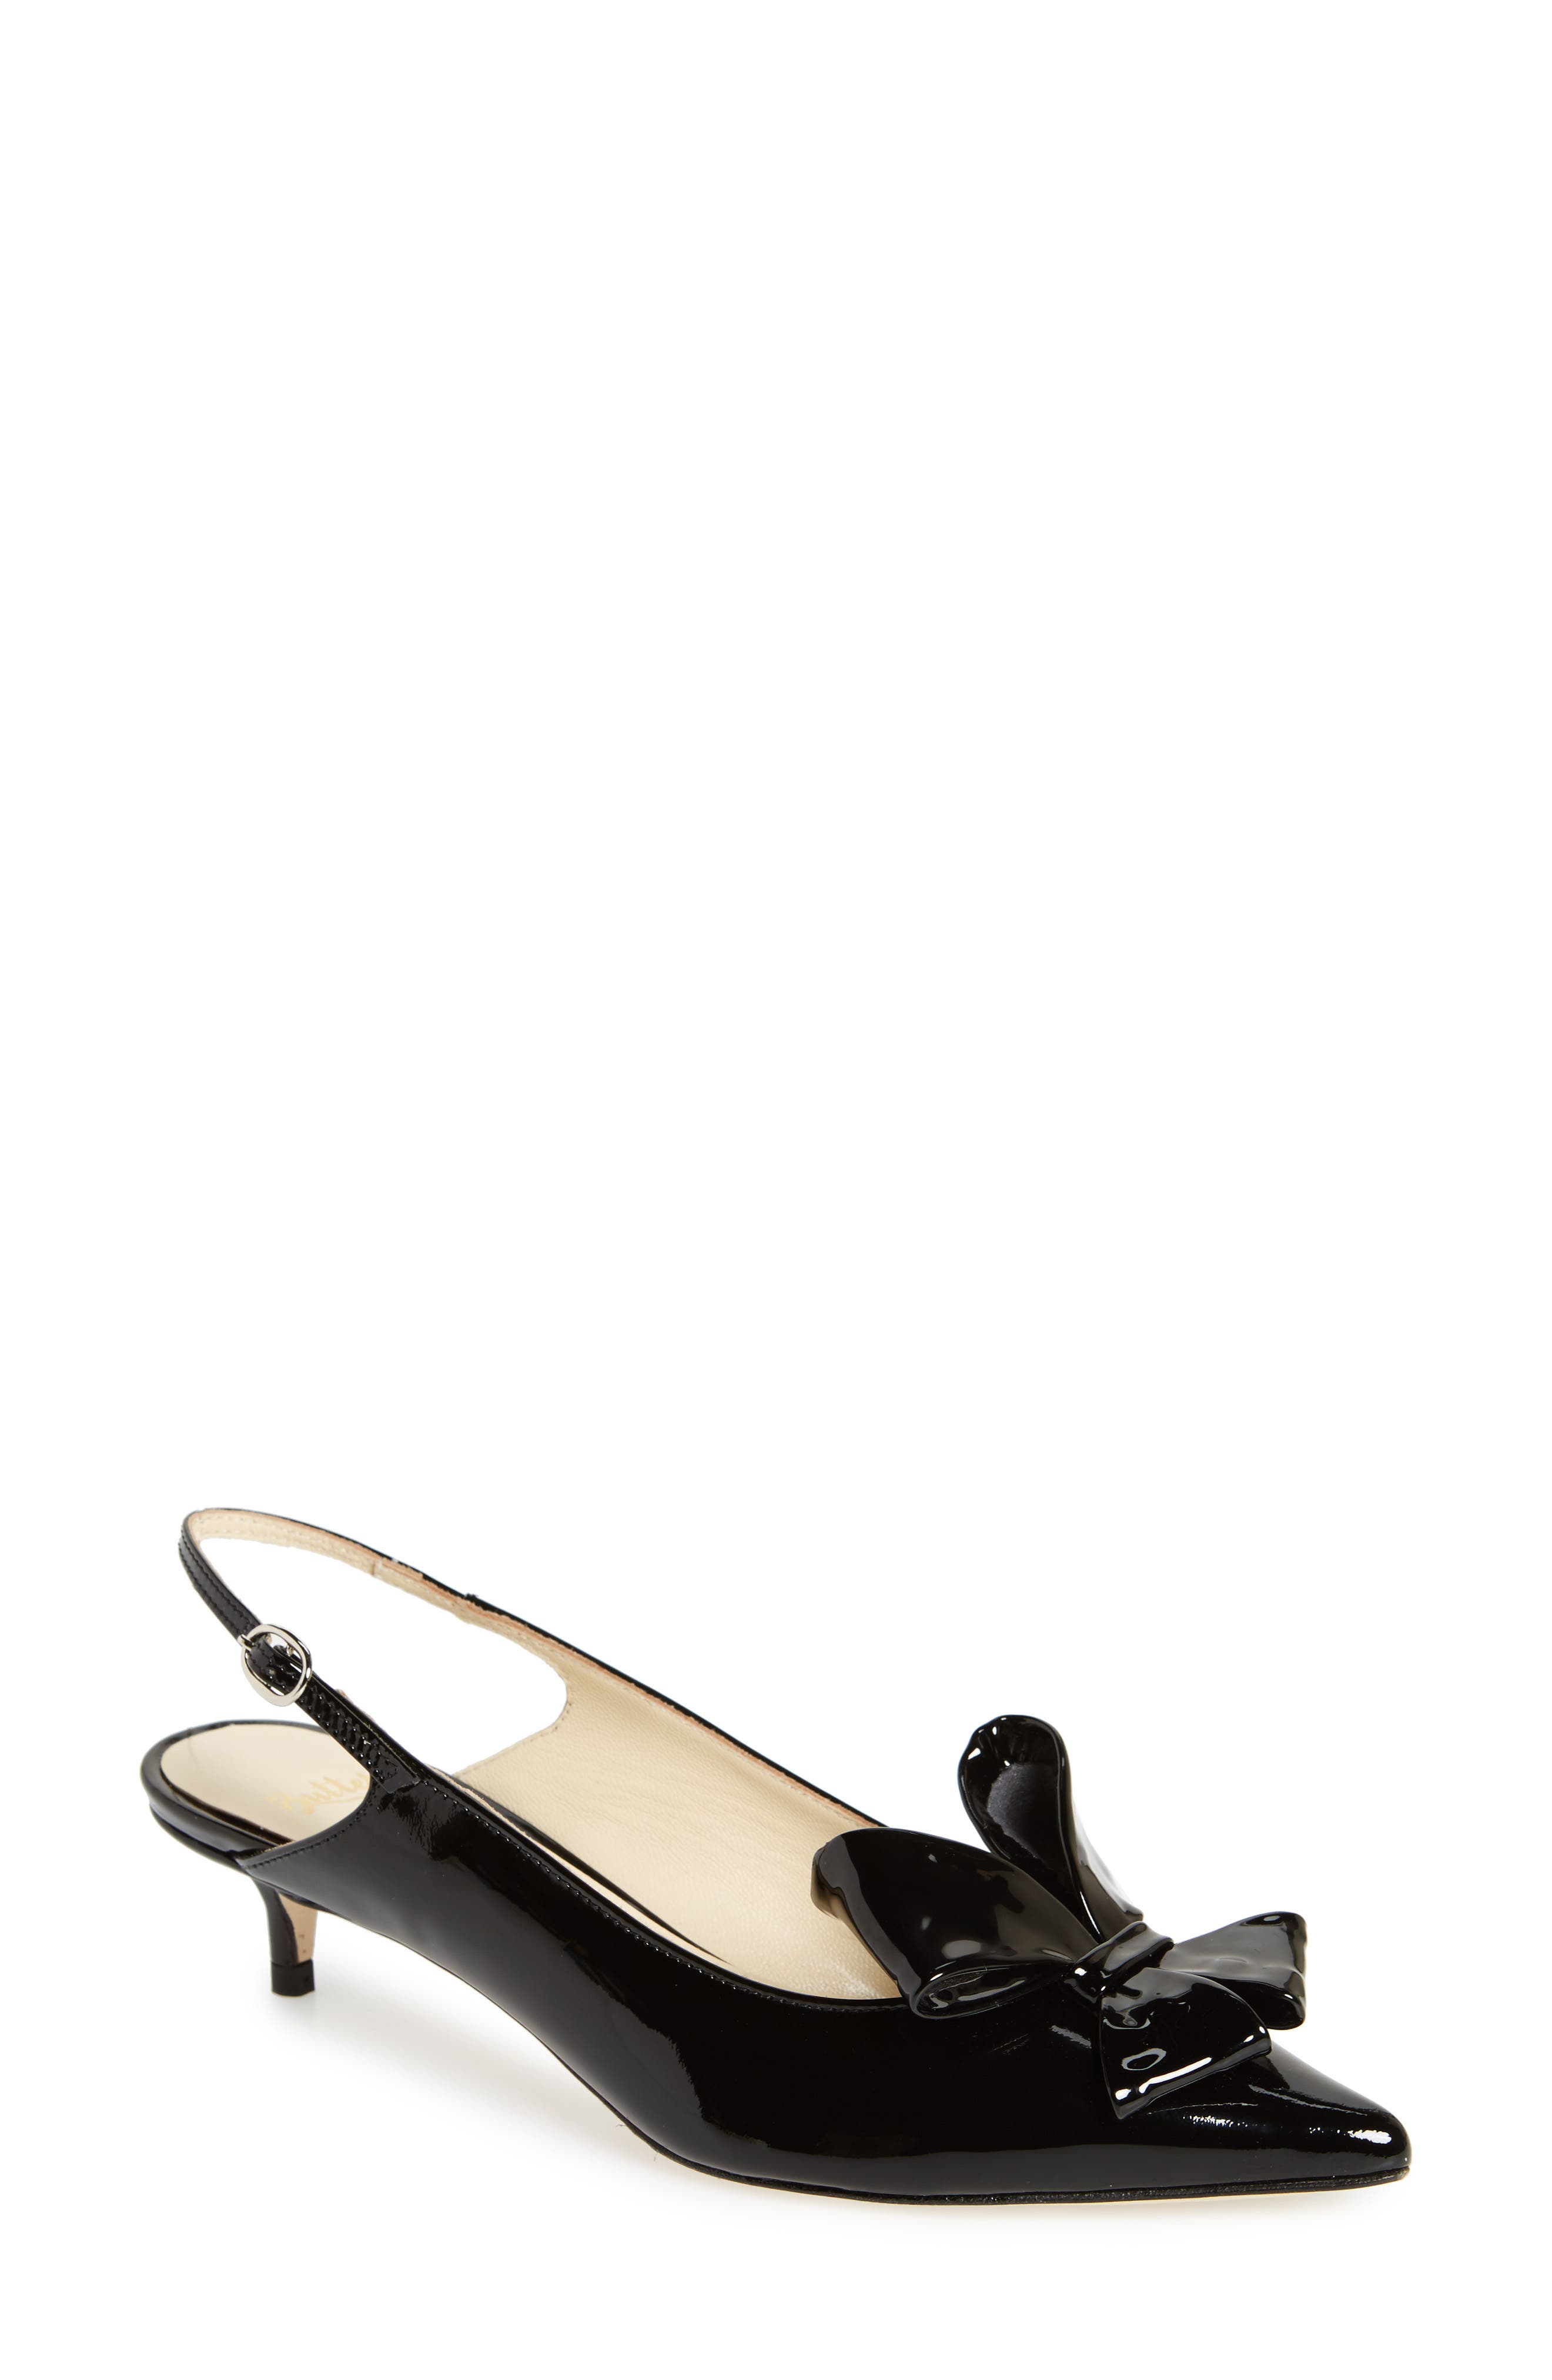 Butter Bee Slingback Pump,                         Main,                         color, 001